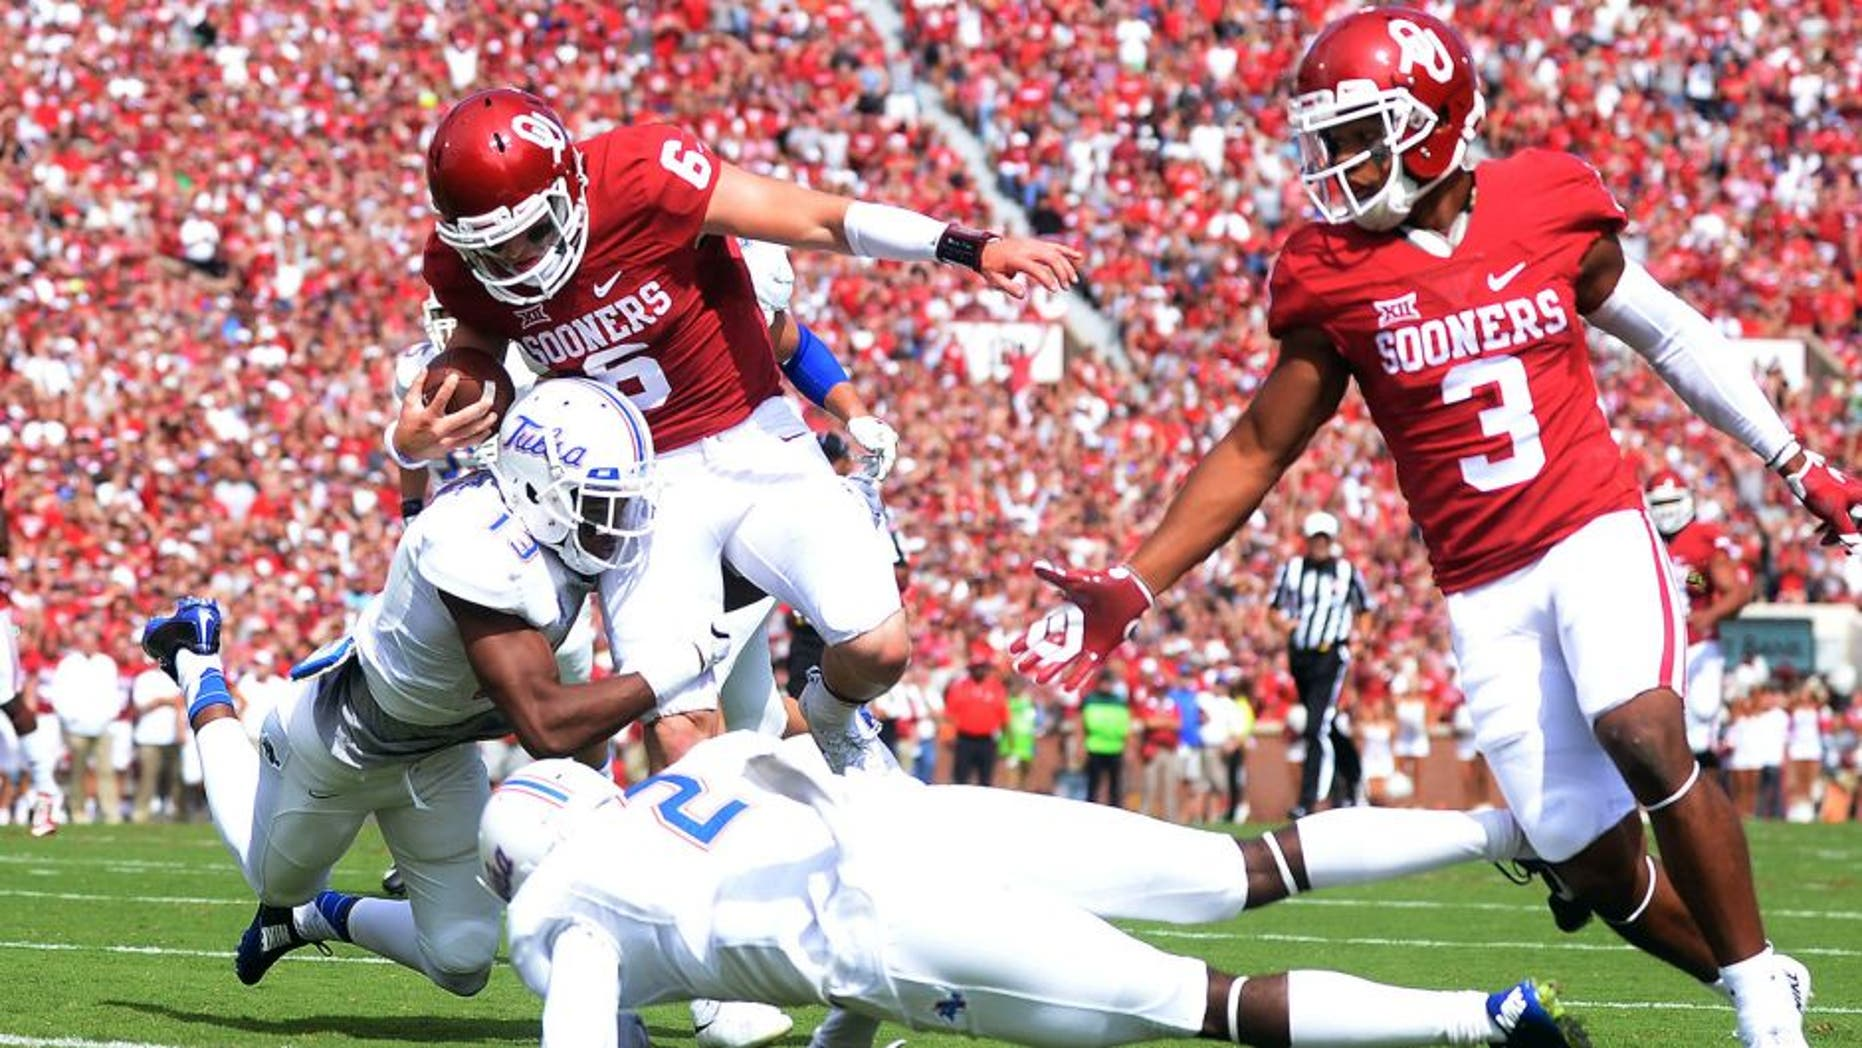 Sep 19, 2015; Norman, OK, USA;Oklahoma Sooners quarterback Baker Mayfield (6) runs for a touchdown against the Tulsa Golden Hurricane during the first quarter at Gaylord Family - Oklahoma Memorial Stadium. Mandatory Credit: Mark D. Smith-USA TODAY Sports